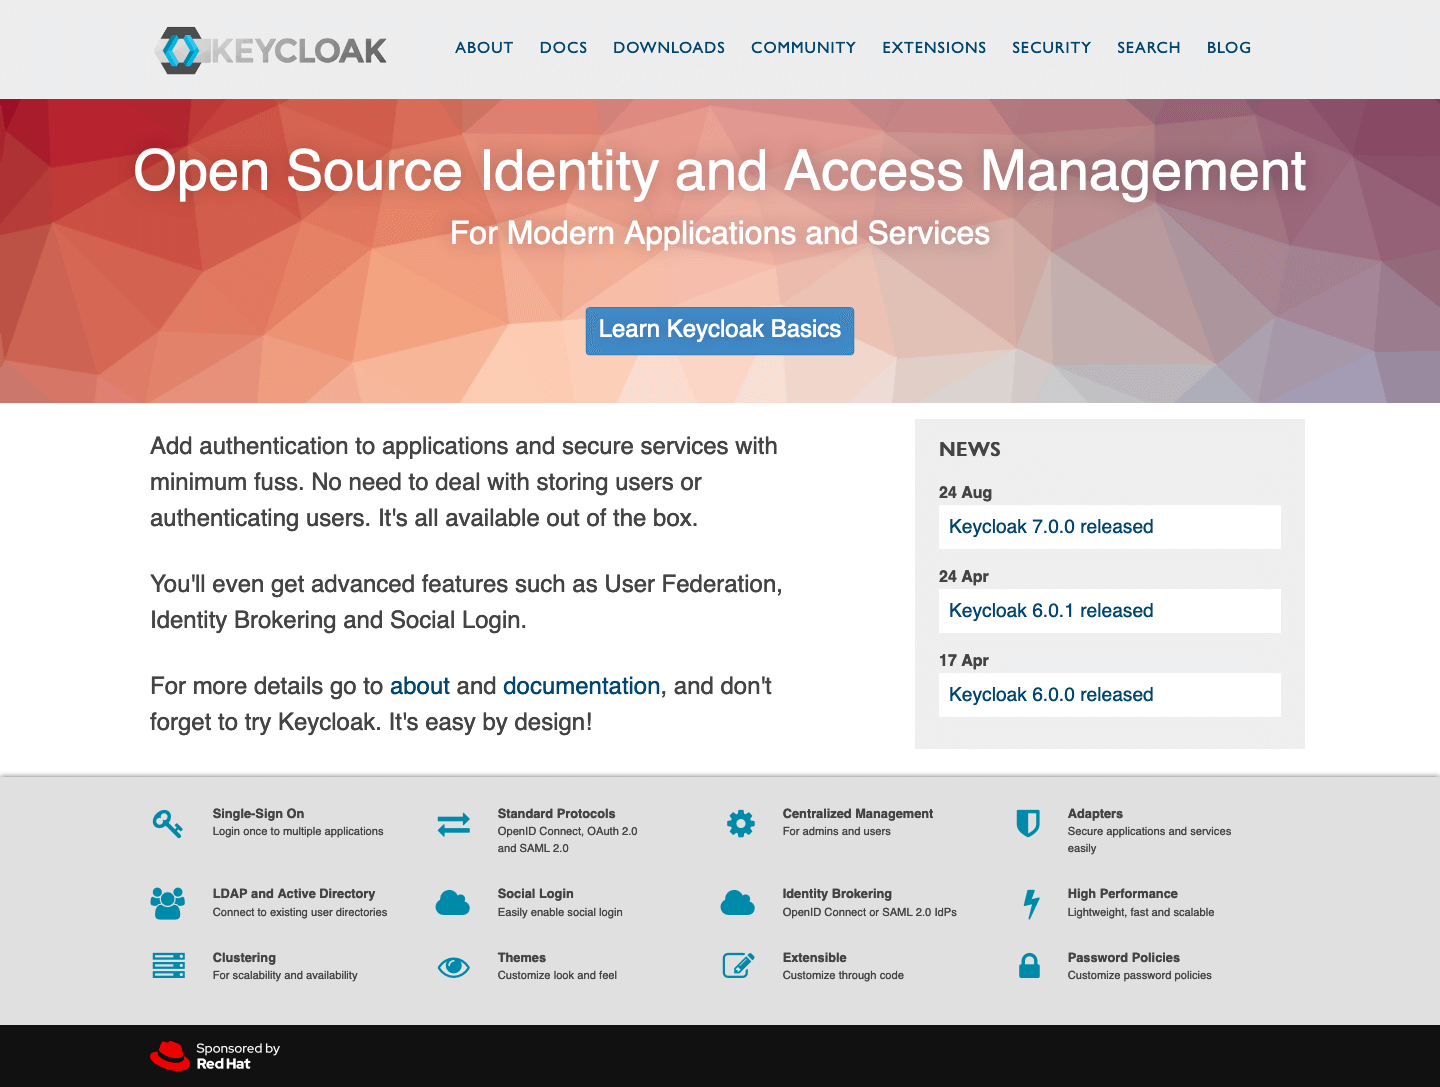 Introducing Keycloak for Identity and Access Management